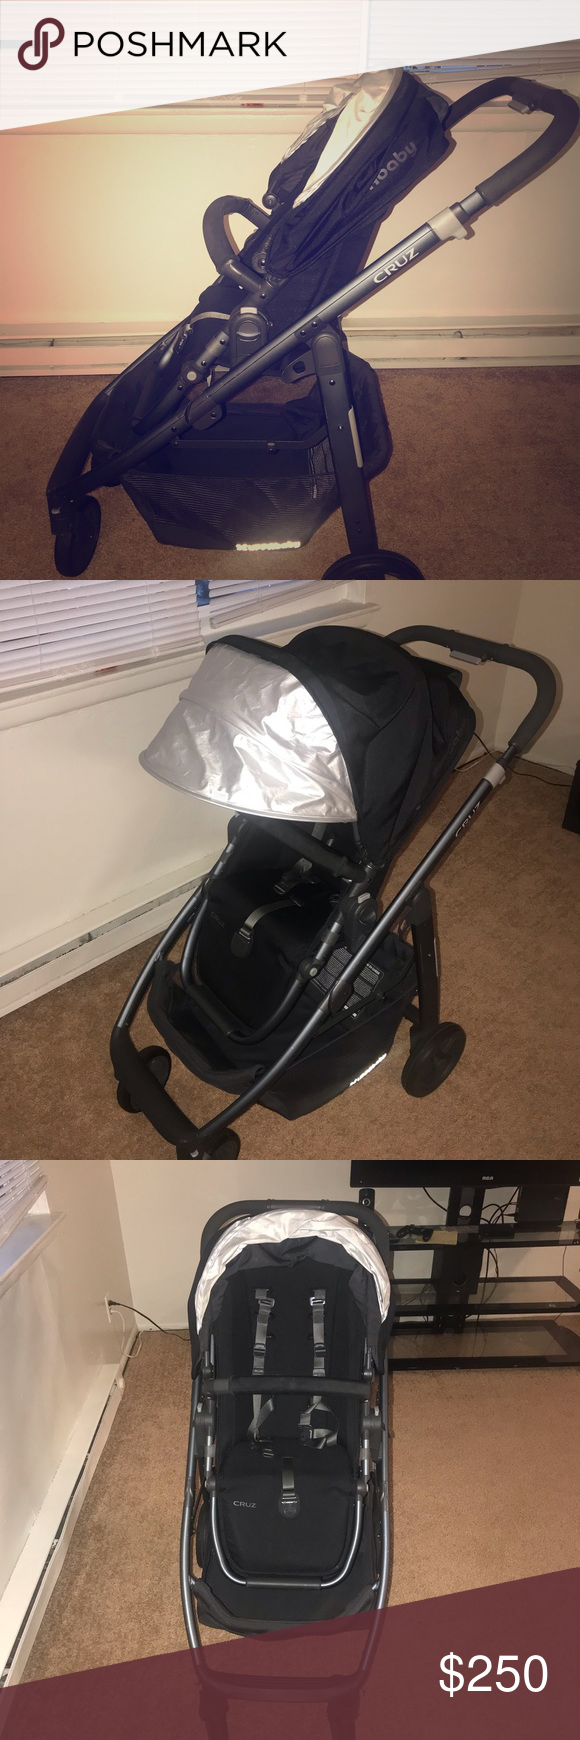 Uppababy Cruz stroller Its very clean, and works perfectly